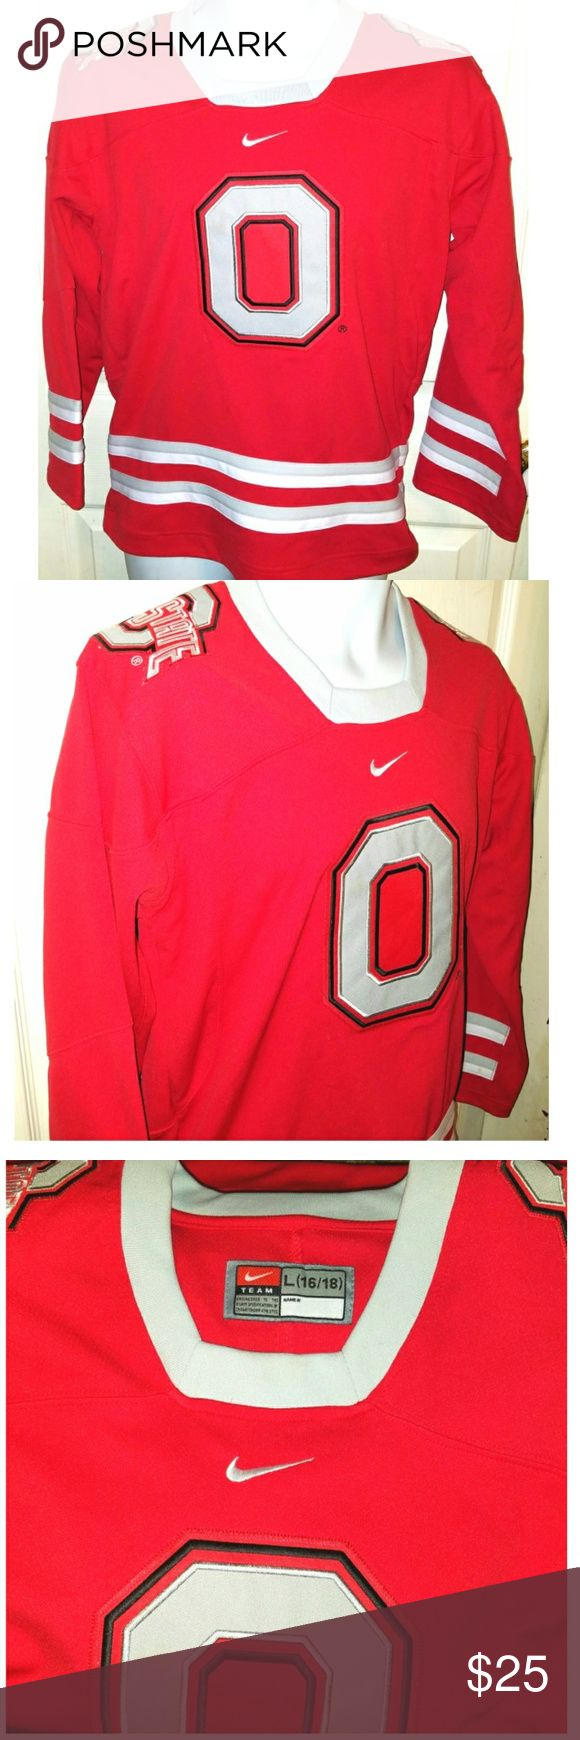 Nike OHIO STATE BUCKEYES Sewn Hockey Jersey Large This is a youth large (16/18) hockey jersey for the Ohio State Buckeyes by Nike. The chest measures 20 inches and the length is 28 inches. Nike Shirts & Tops